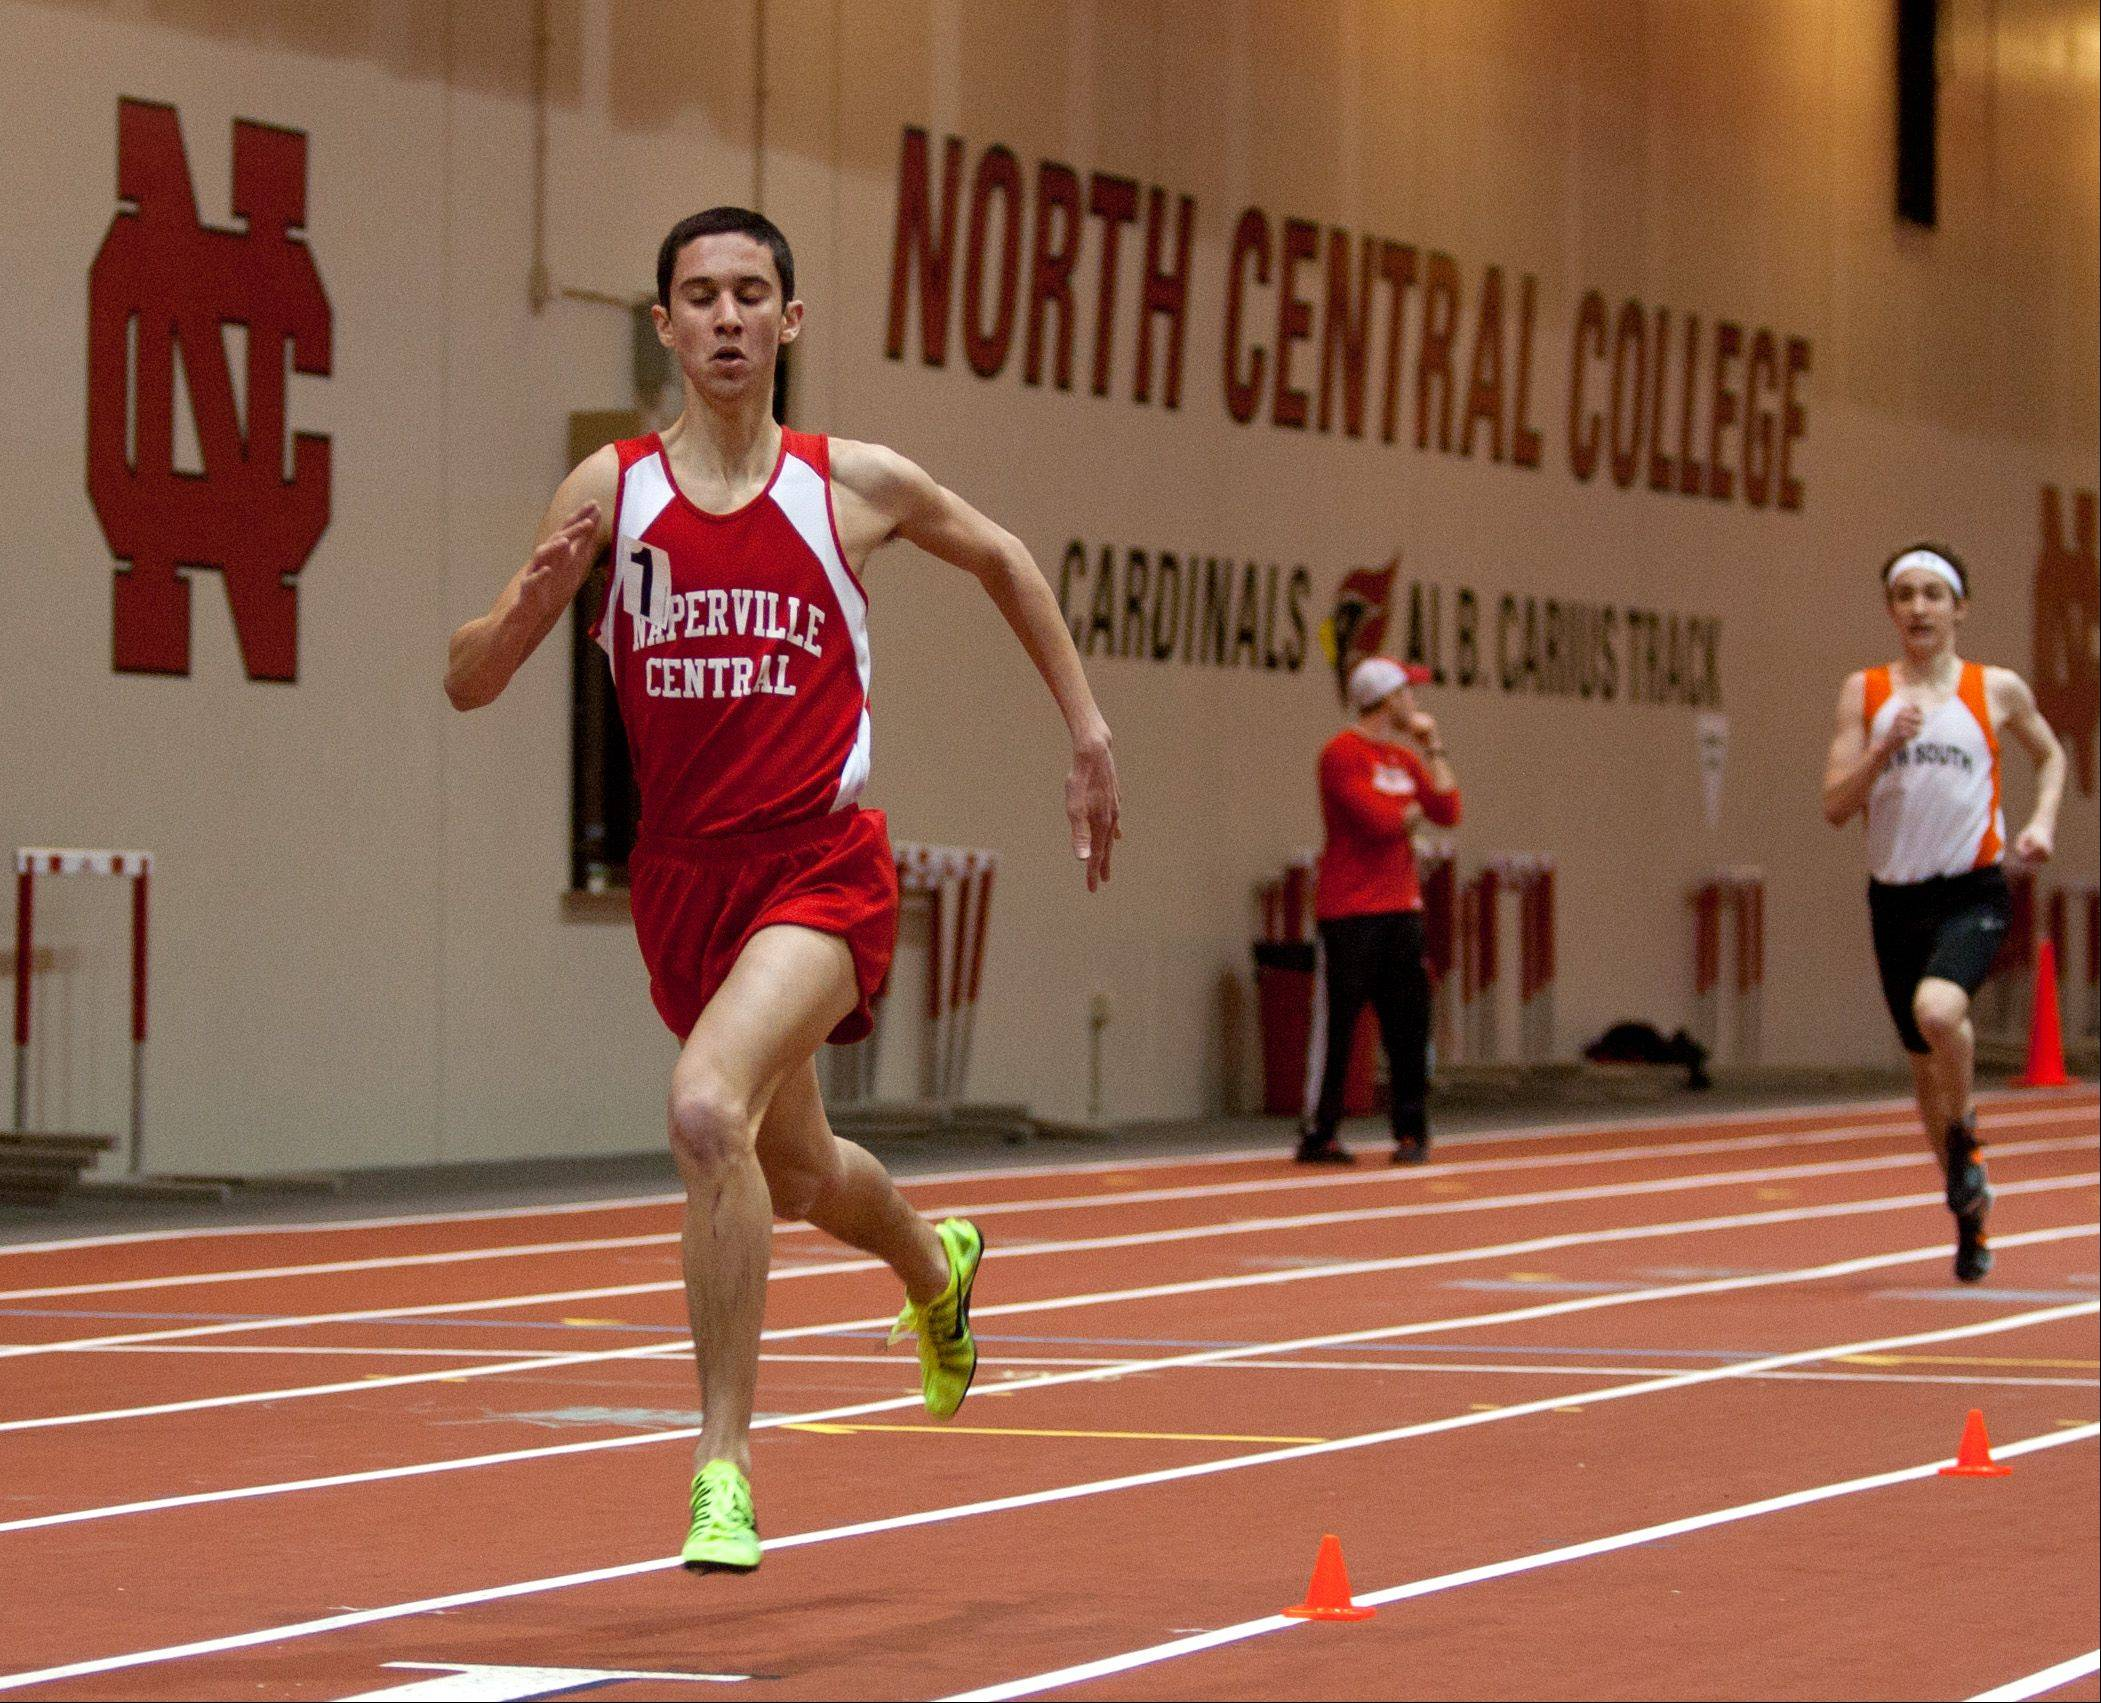 Naperville Central's Ethan Brodeur wins the 1600 meter run, during the DuPage Valley Conference boys track meet.